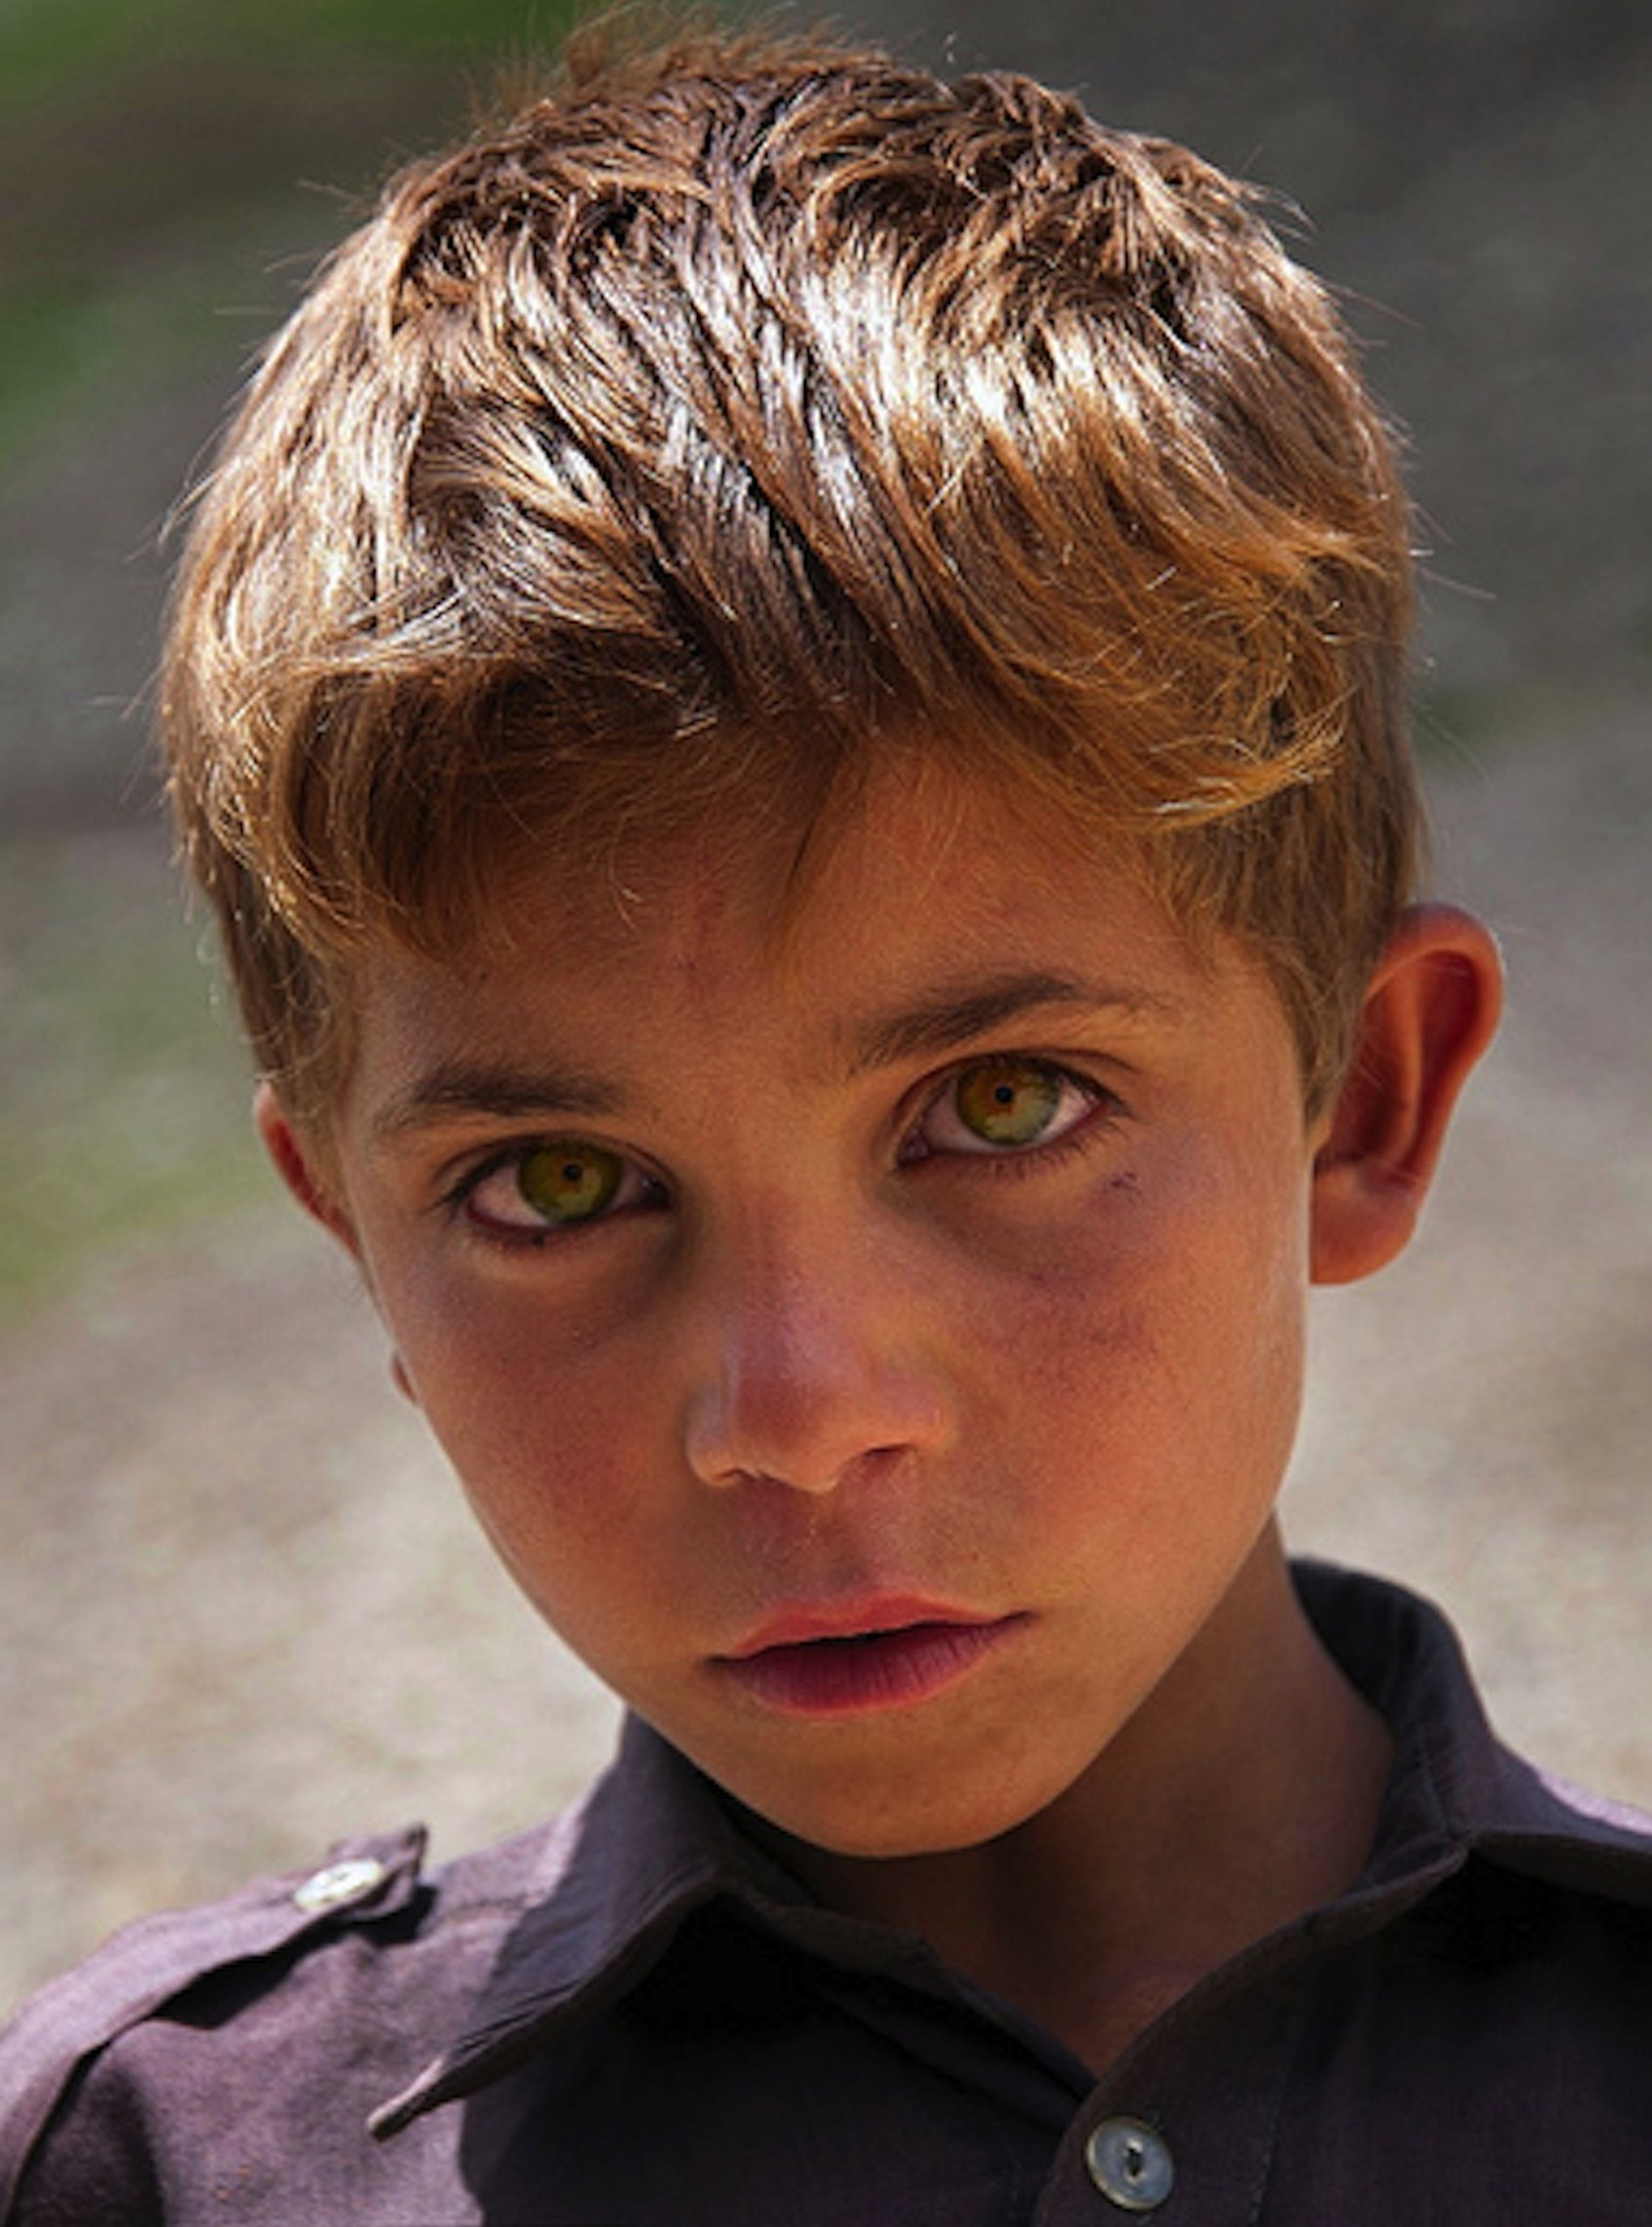 Amazing Eyes Boy From Afghanistan Cool Eyes Face Human